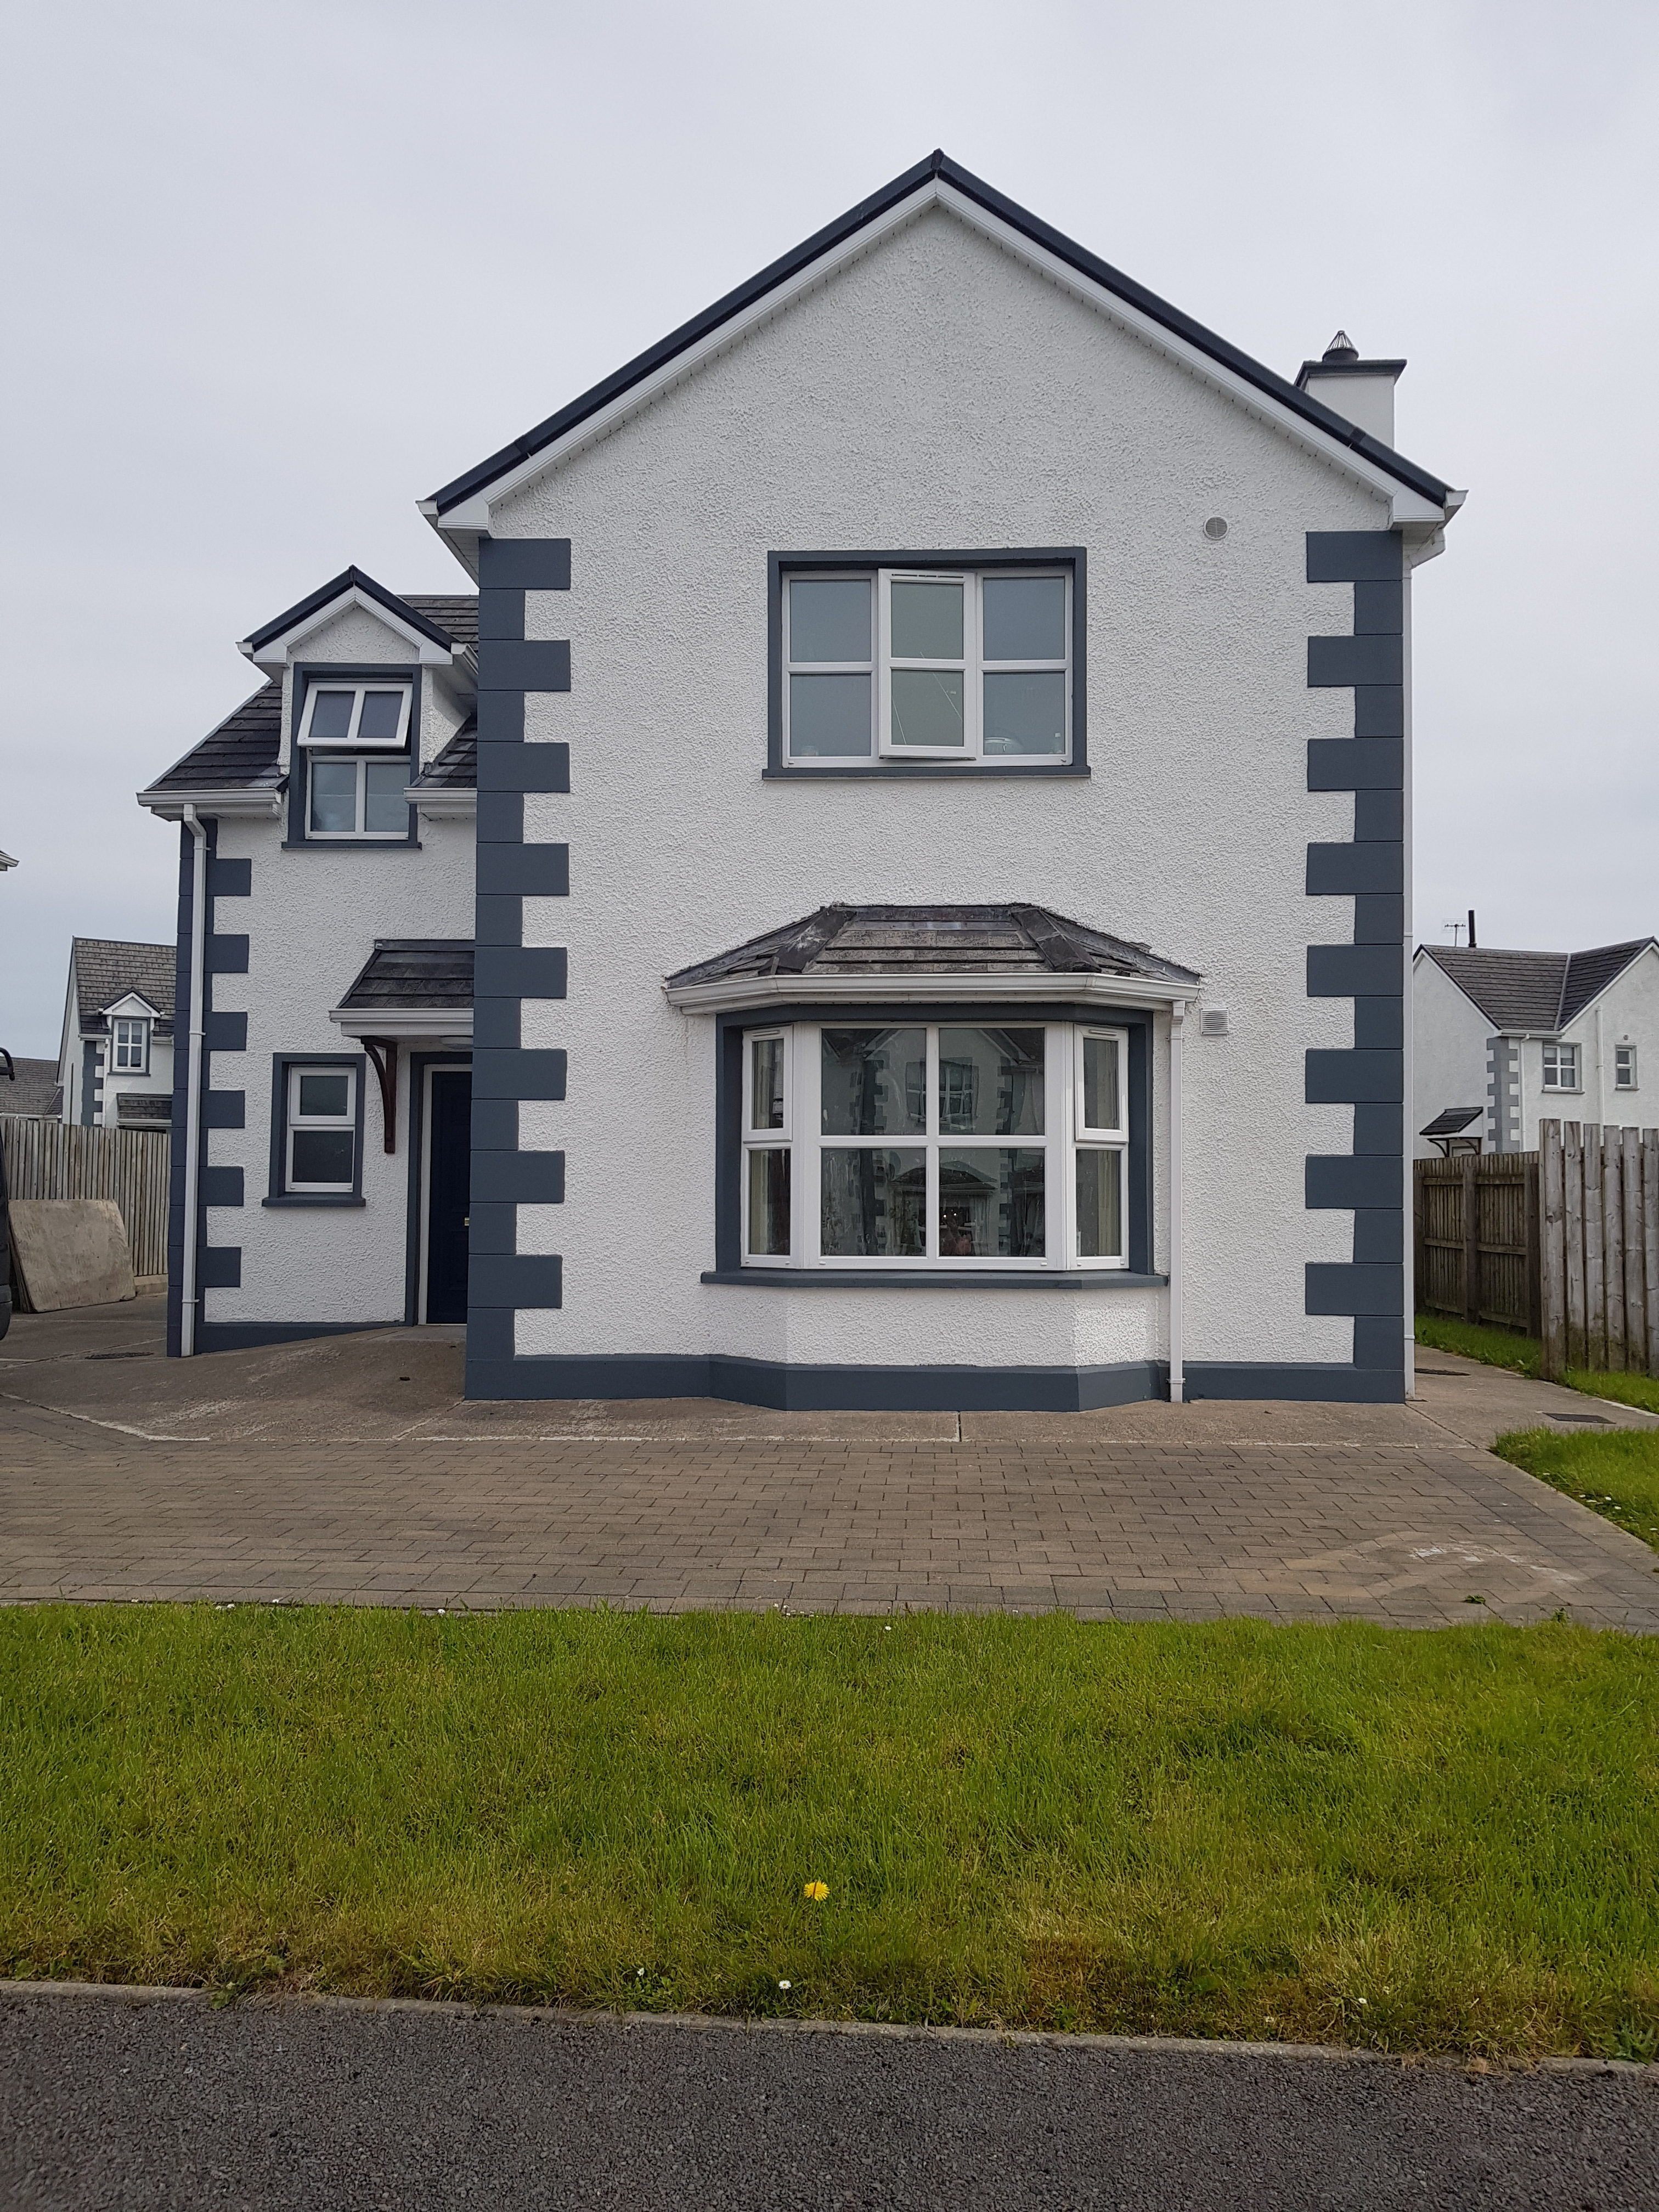 No 25 Cuirt Aishling, Ballybofey, Co. Donegal F93 H7D4